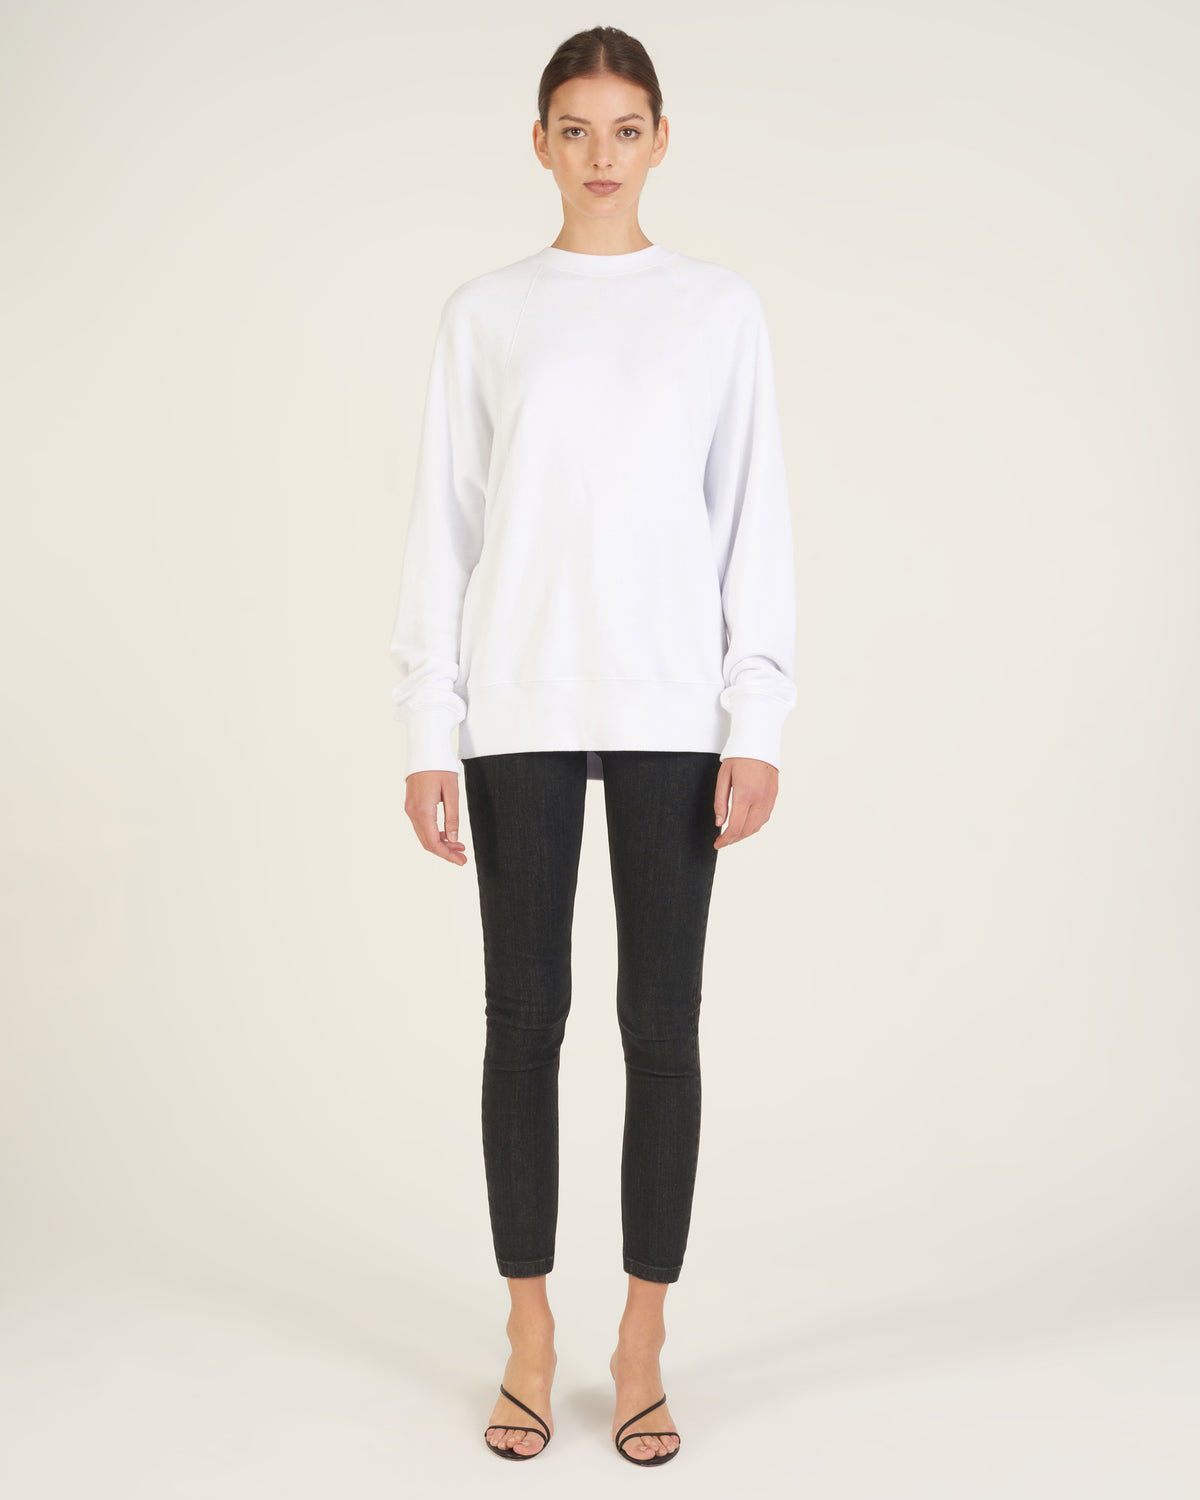 So Uptight Drop Raglan French Terry Sweatshirt in White